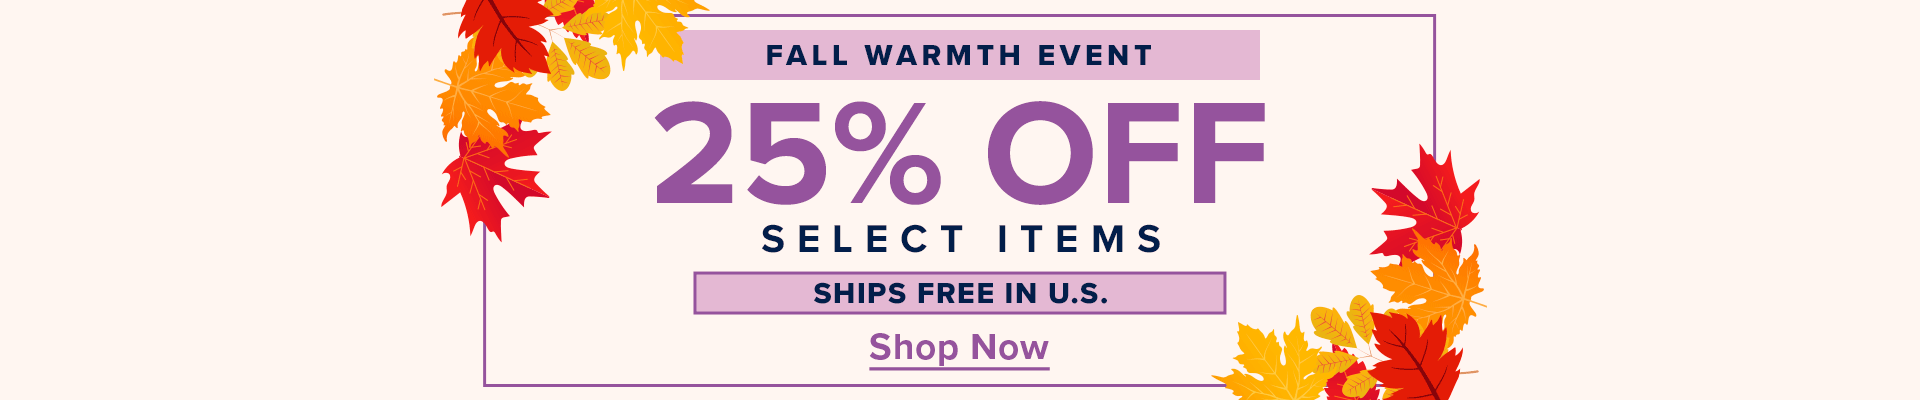 Fall Warmth Event - 25% Off Select Items - Ships Free in U.S.